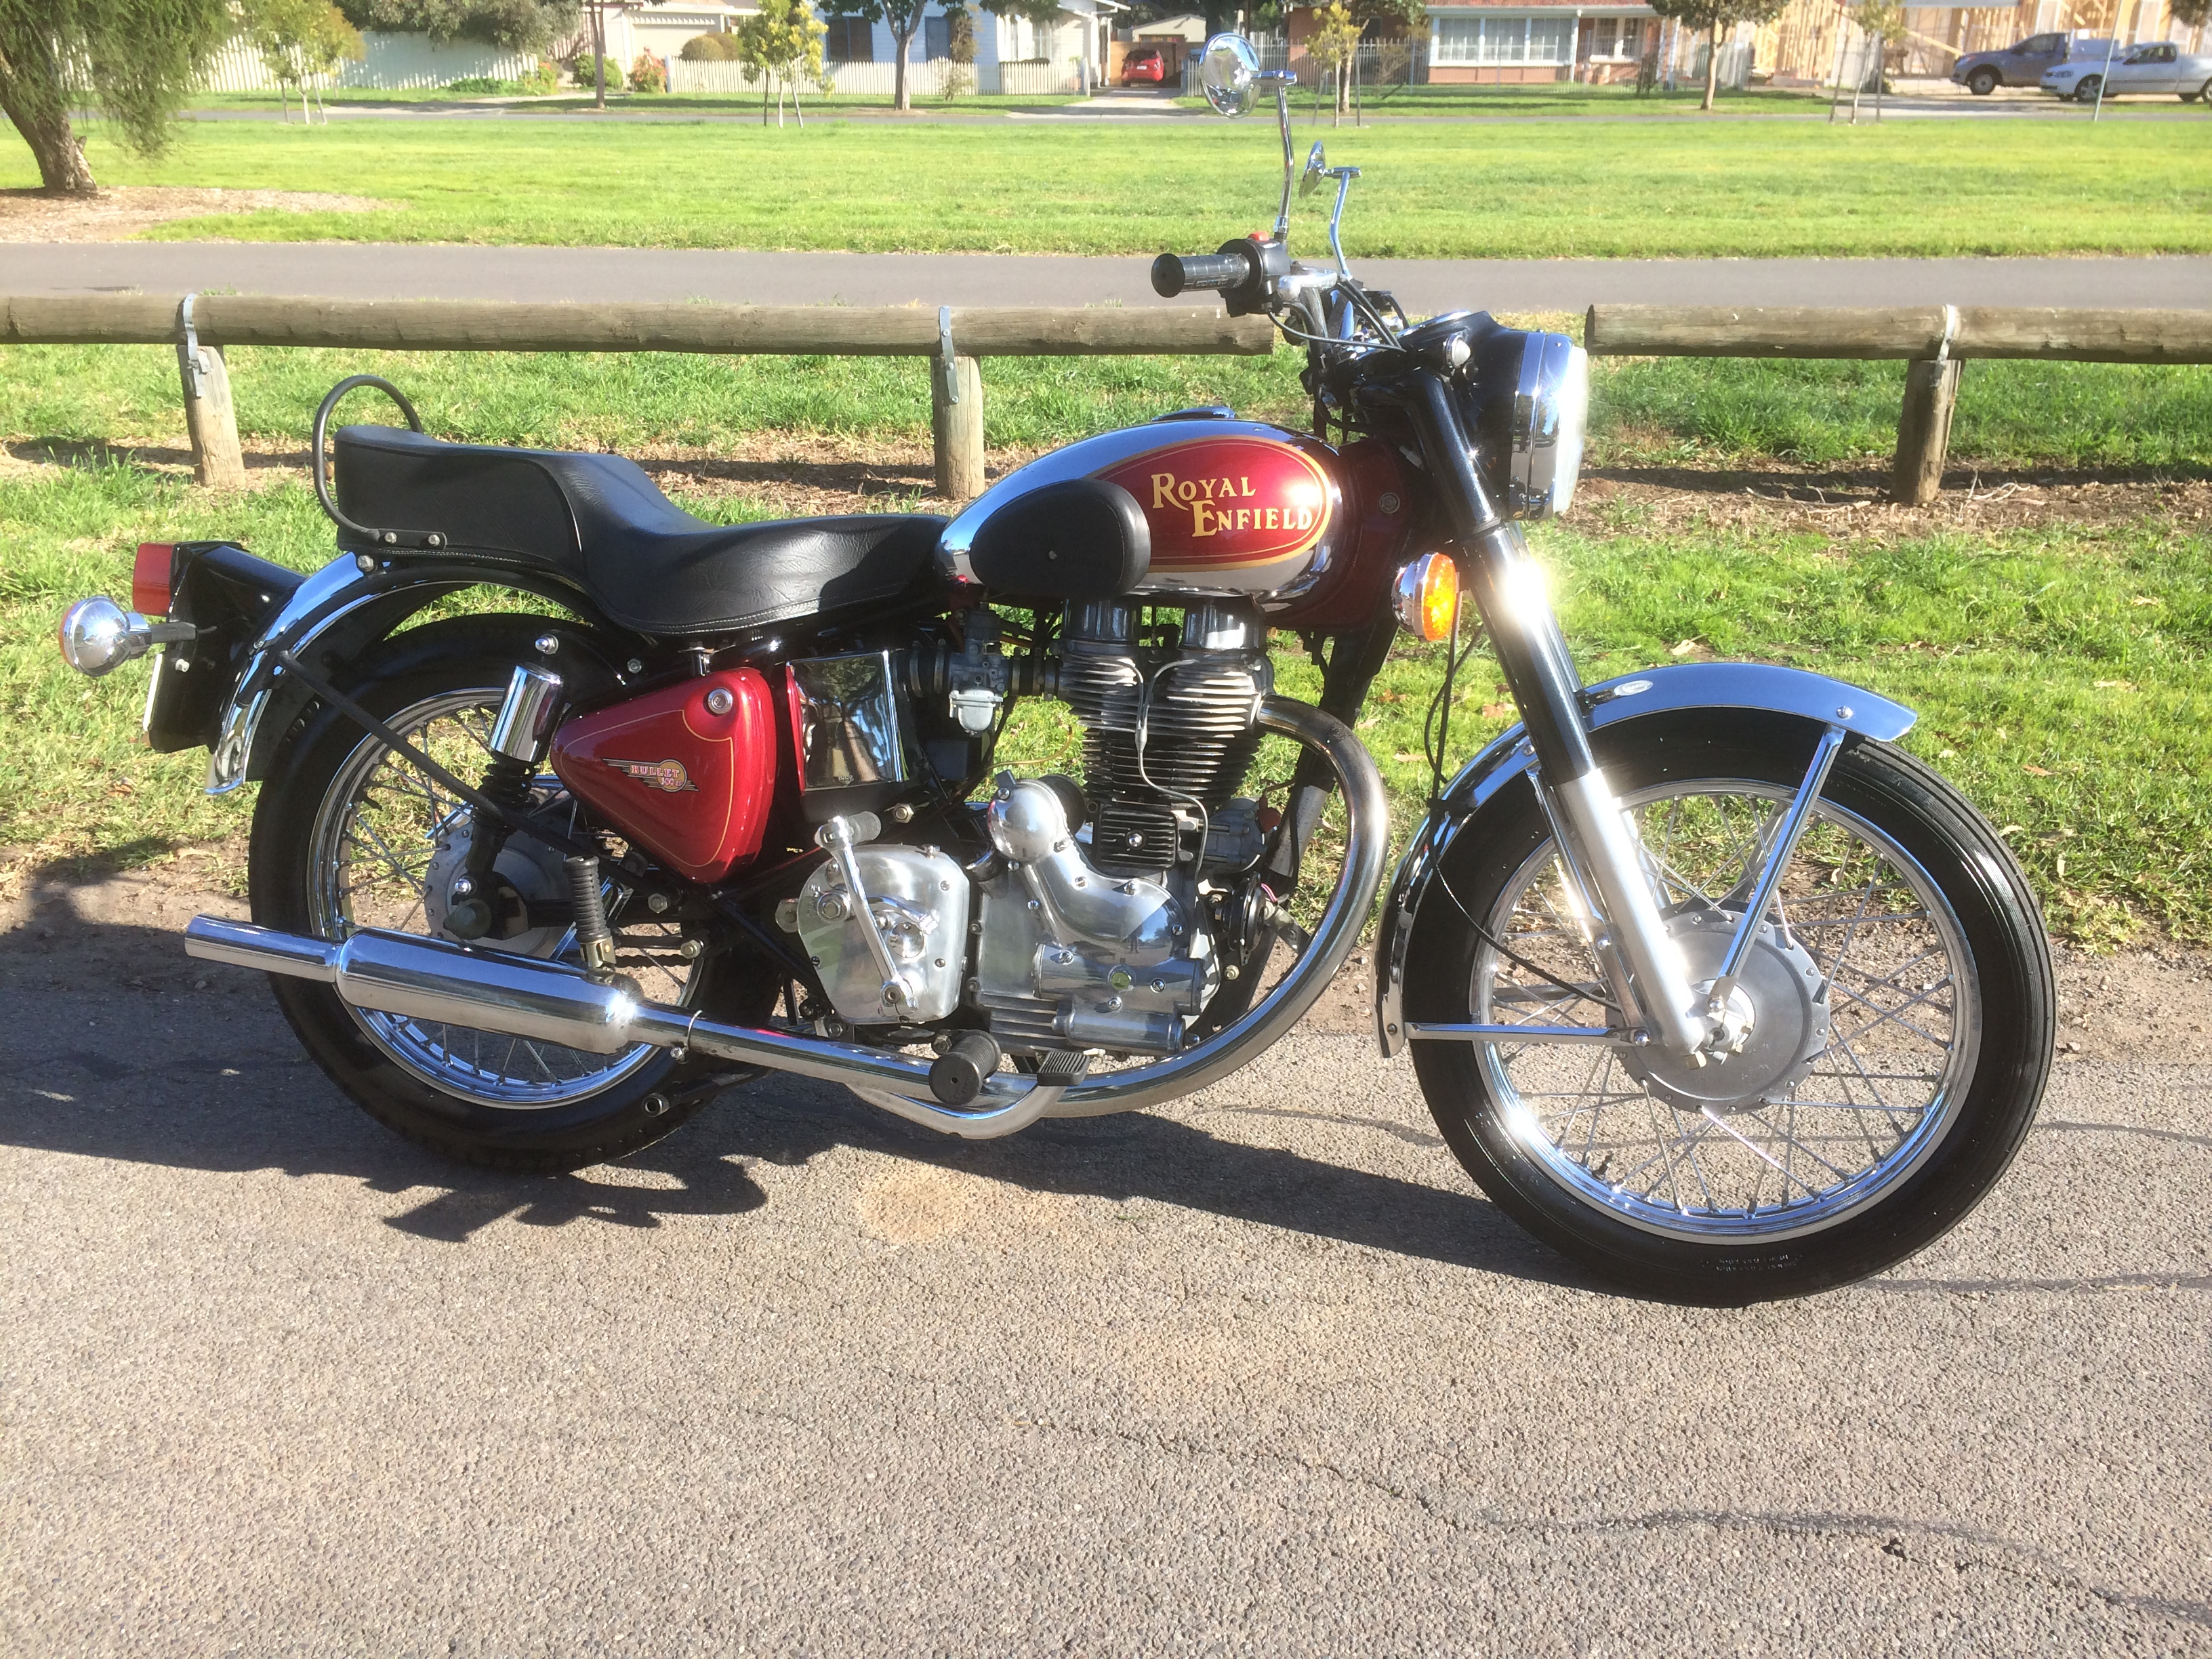 Royal Enfield Bullet 500 Army 1999 images #170663